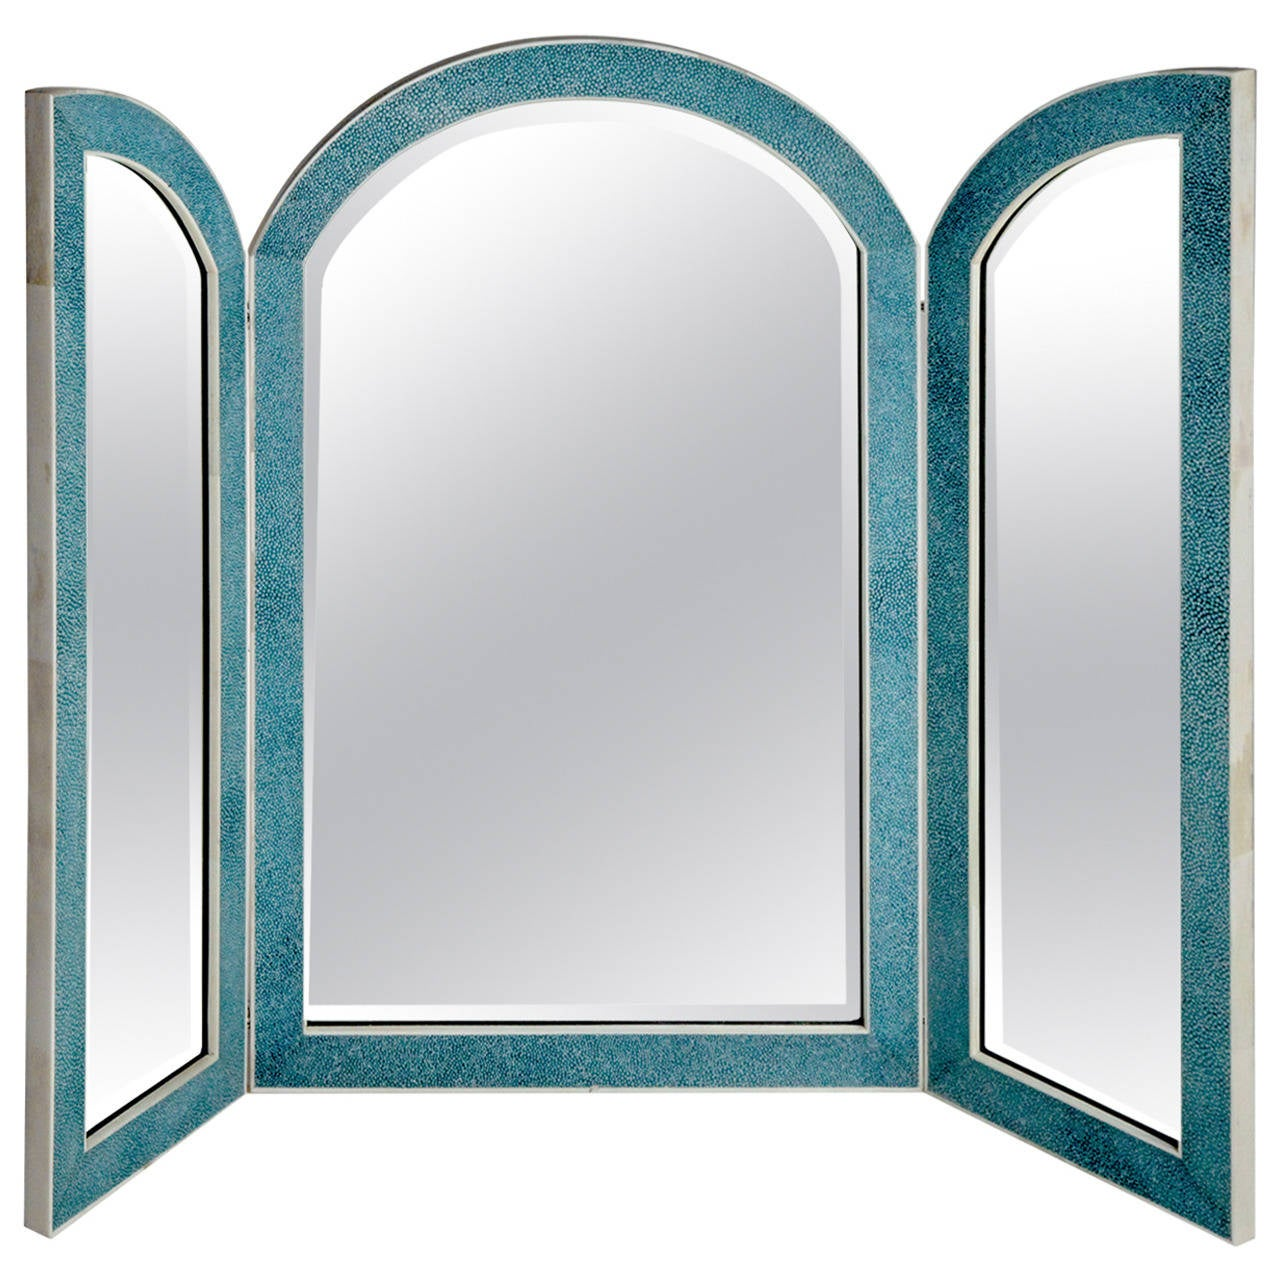 Turquoise tri fold shagreen mirror at 1stdibs for Tri fold mirror